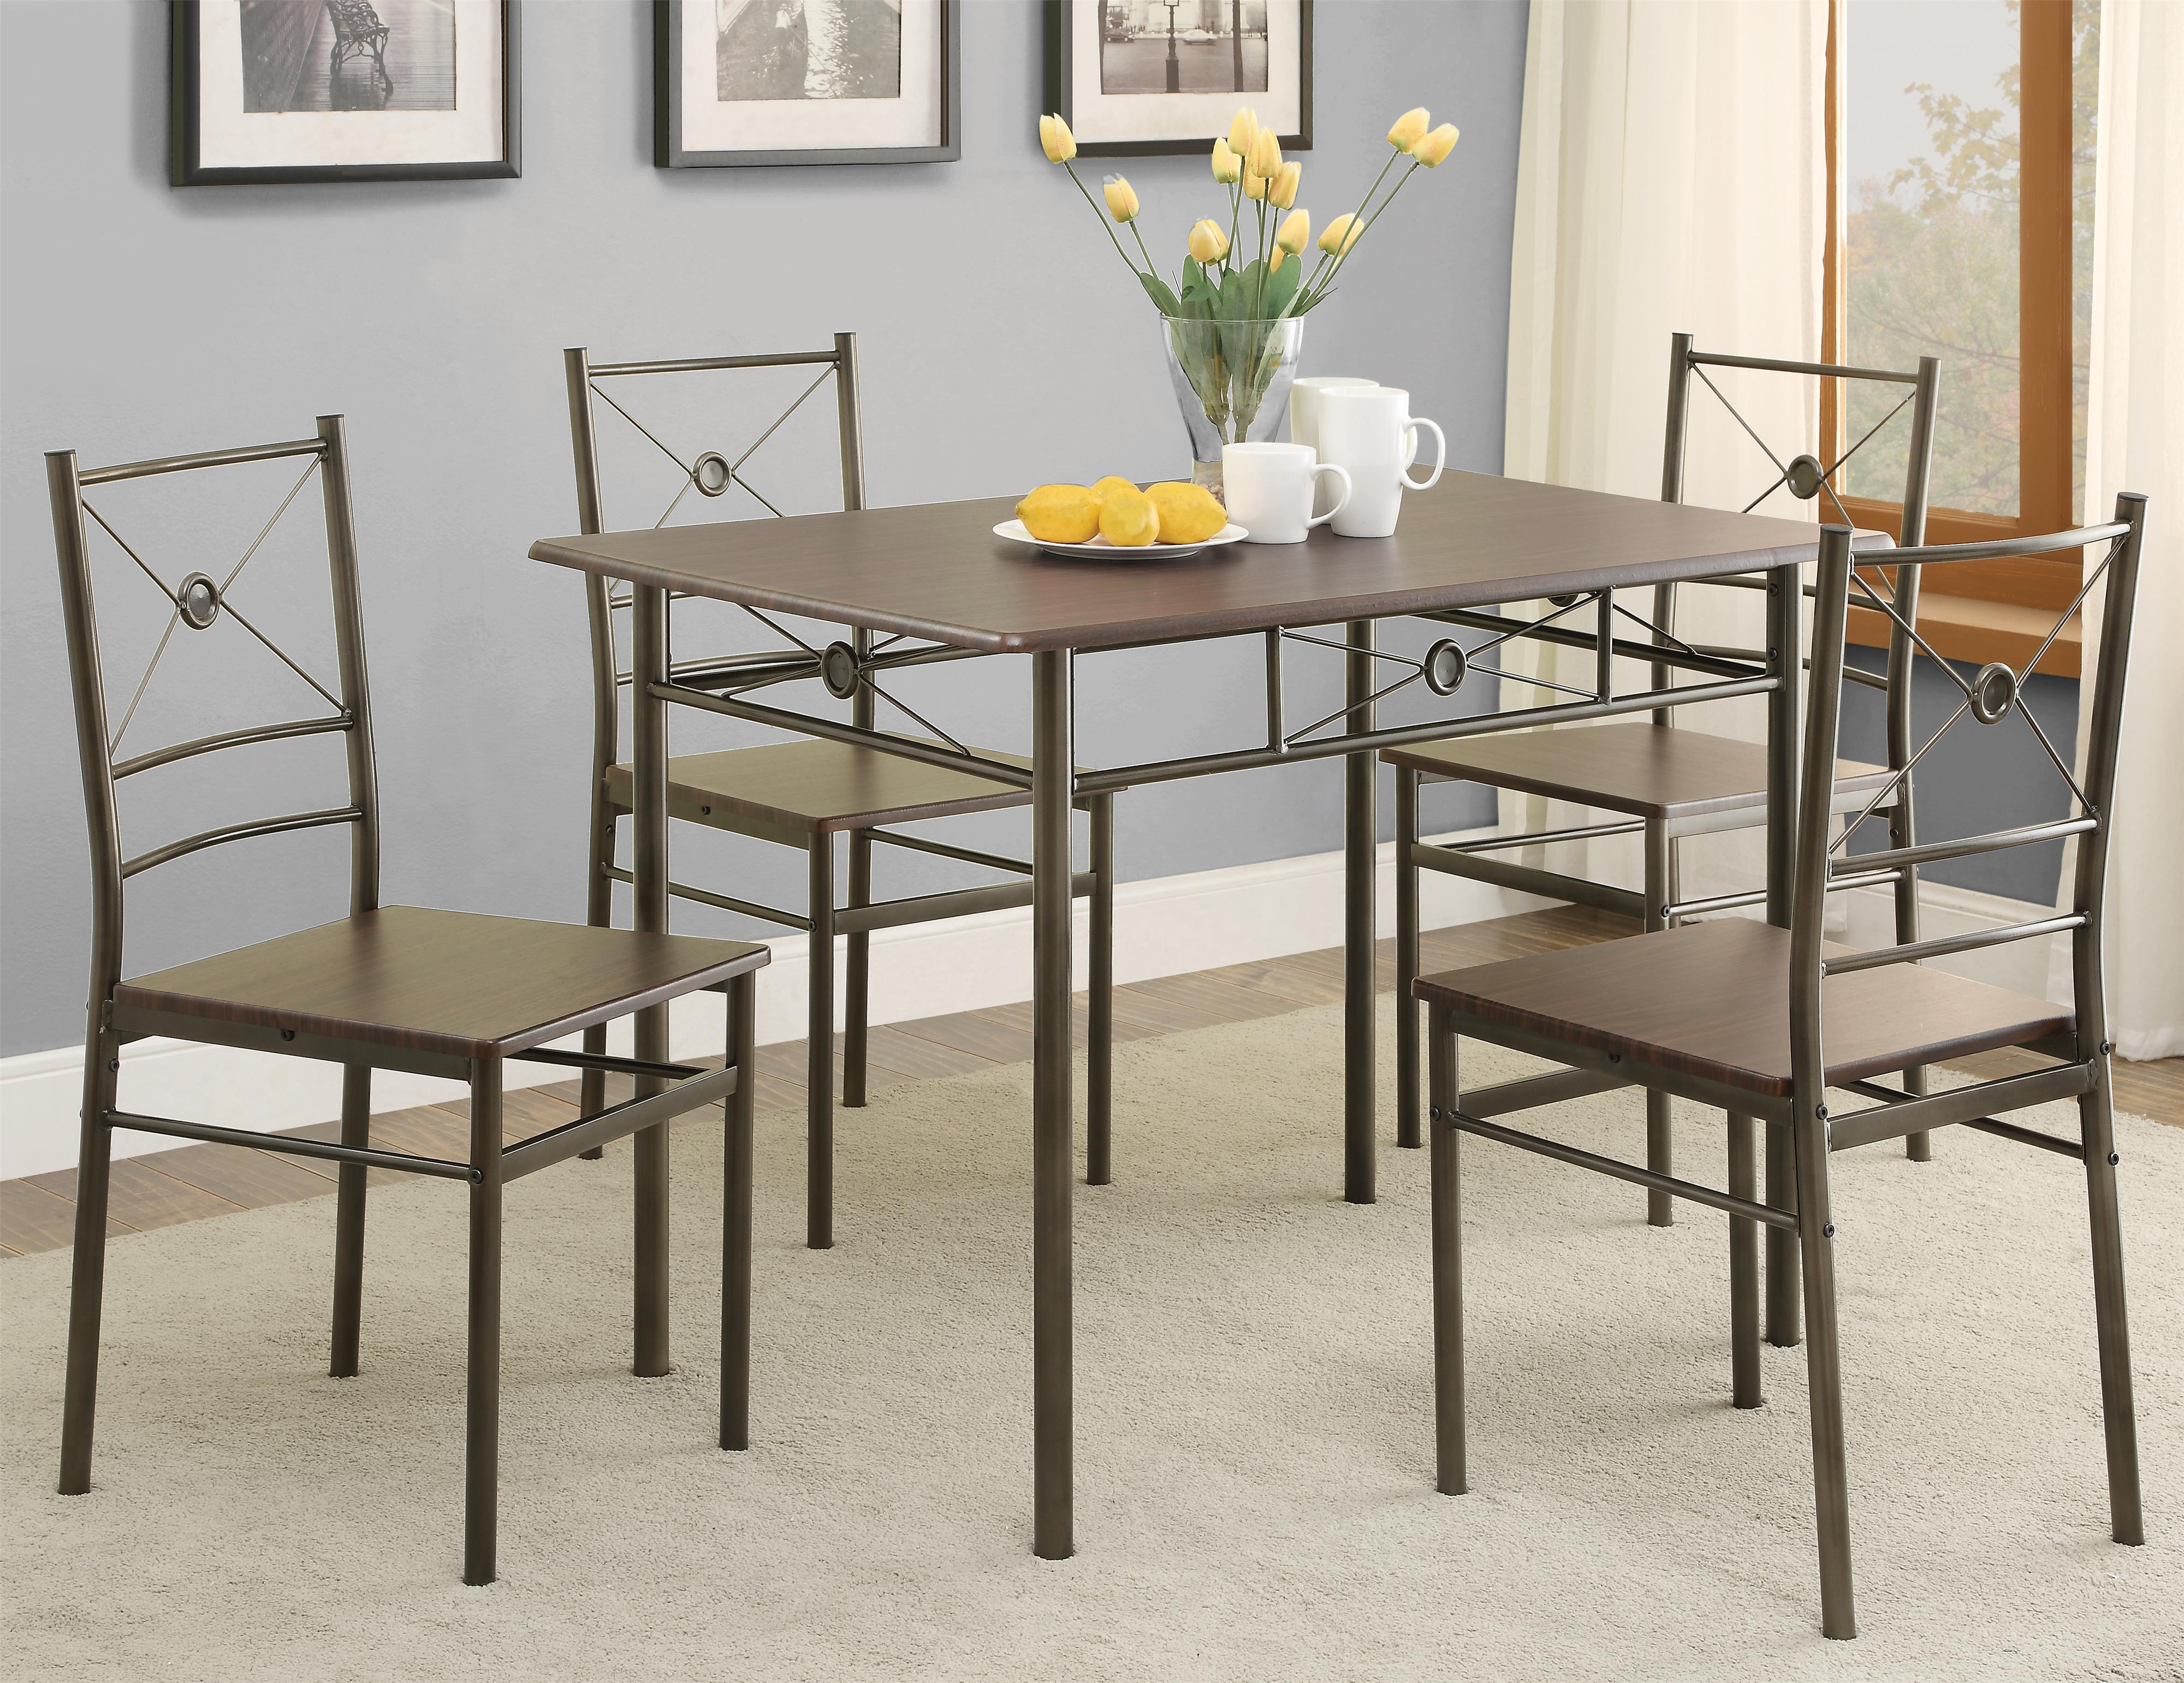 100033 5 Piece Dining Group by Coaster at Corner Furniture